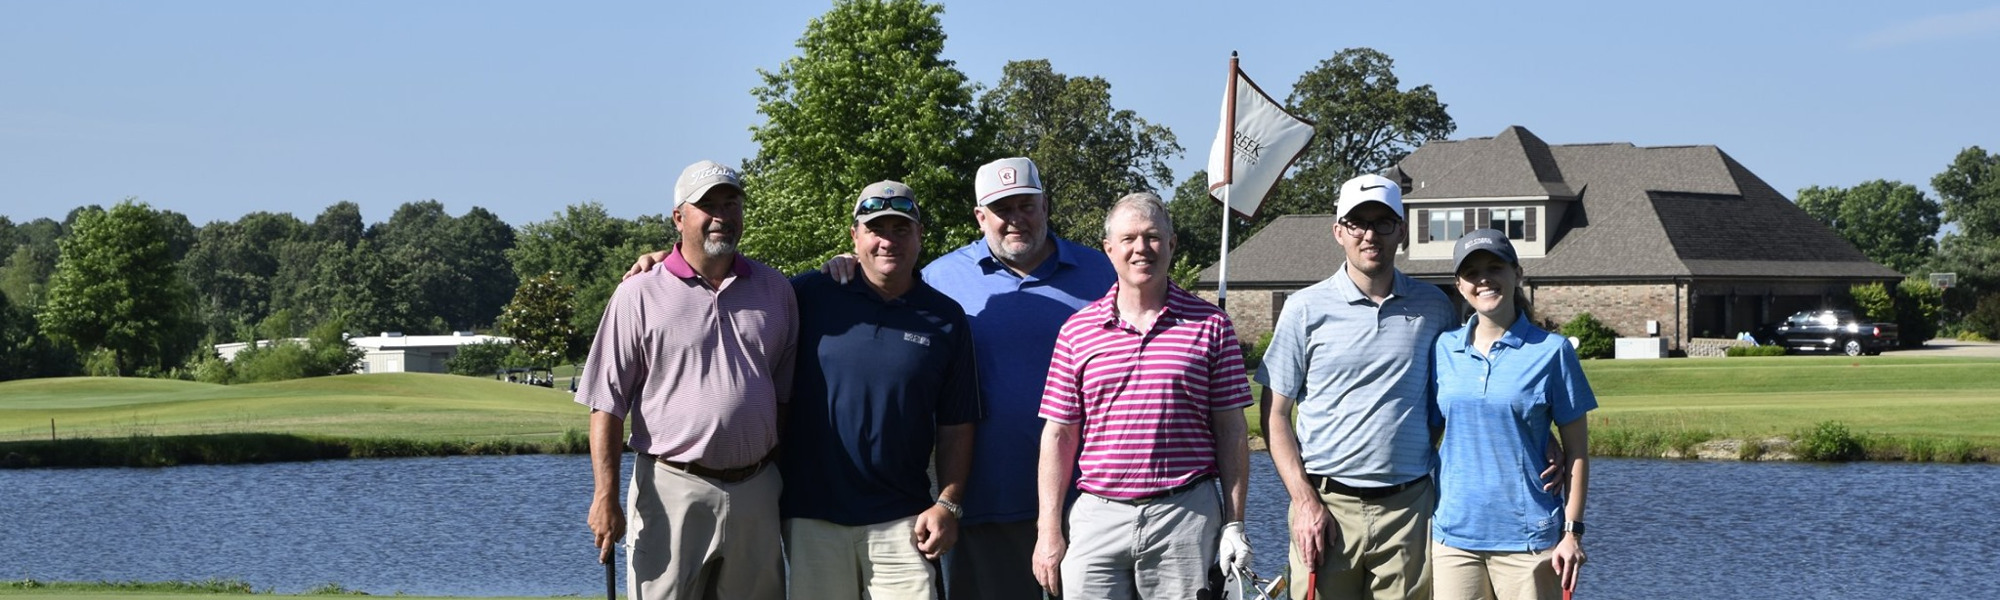 ASUMH Charity Golf Tournament Background Pic